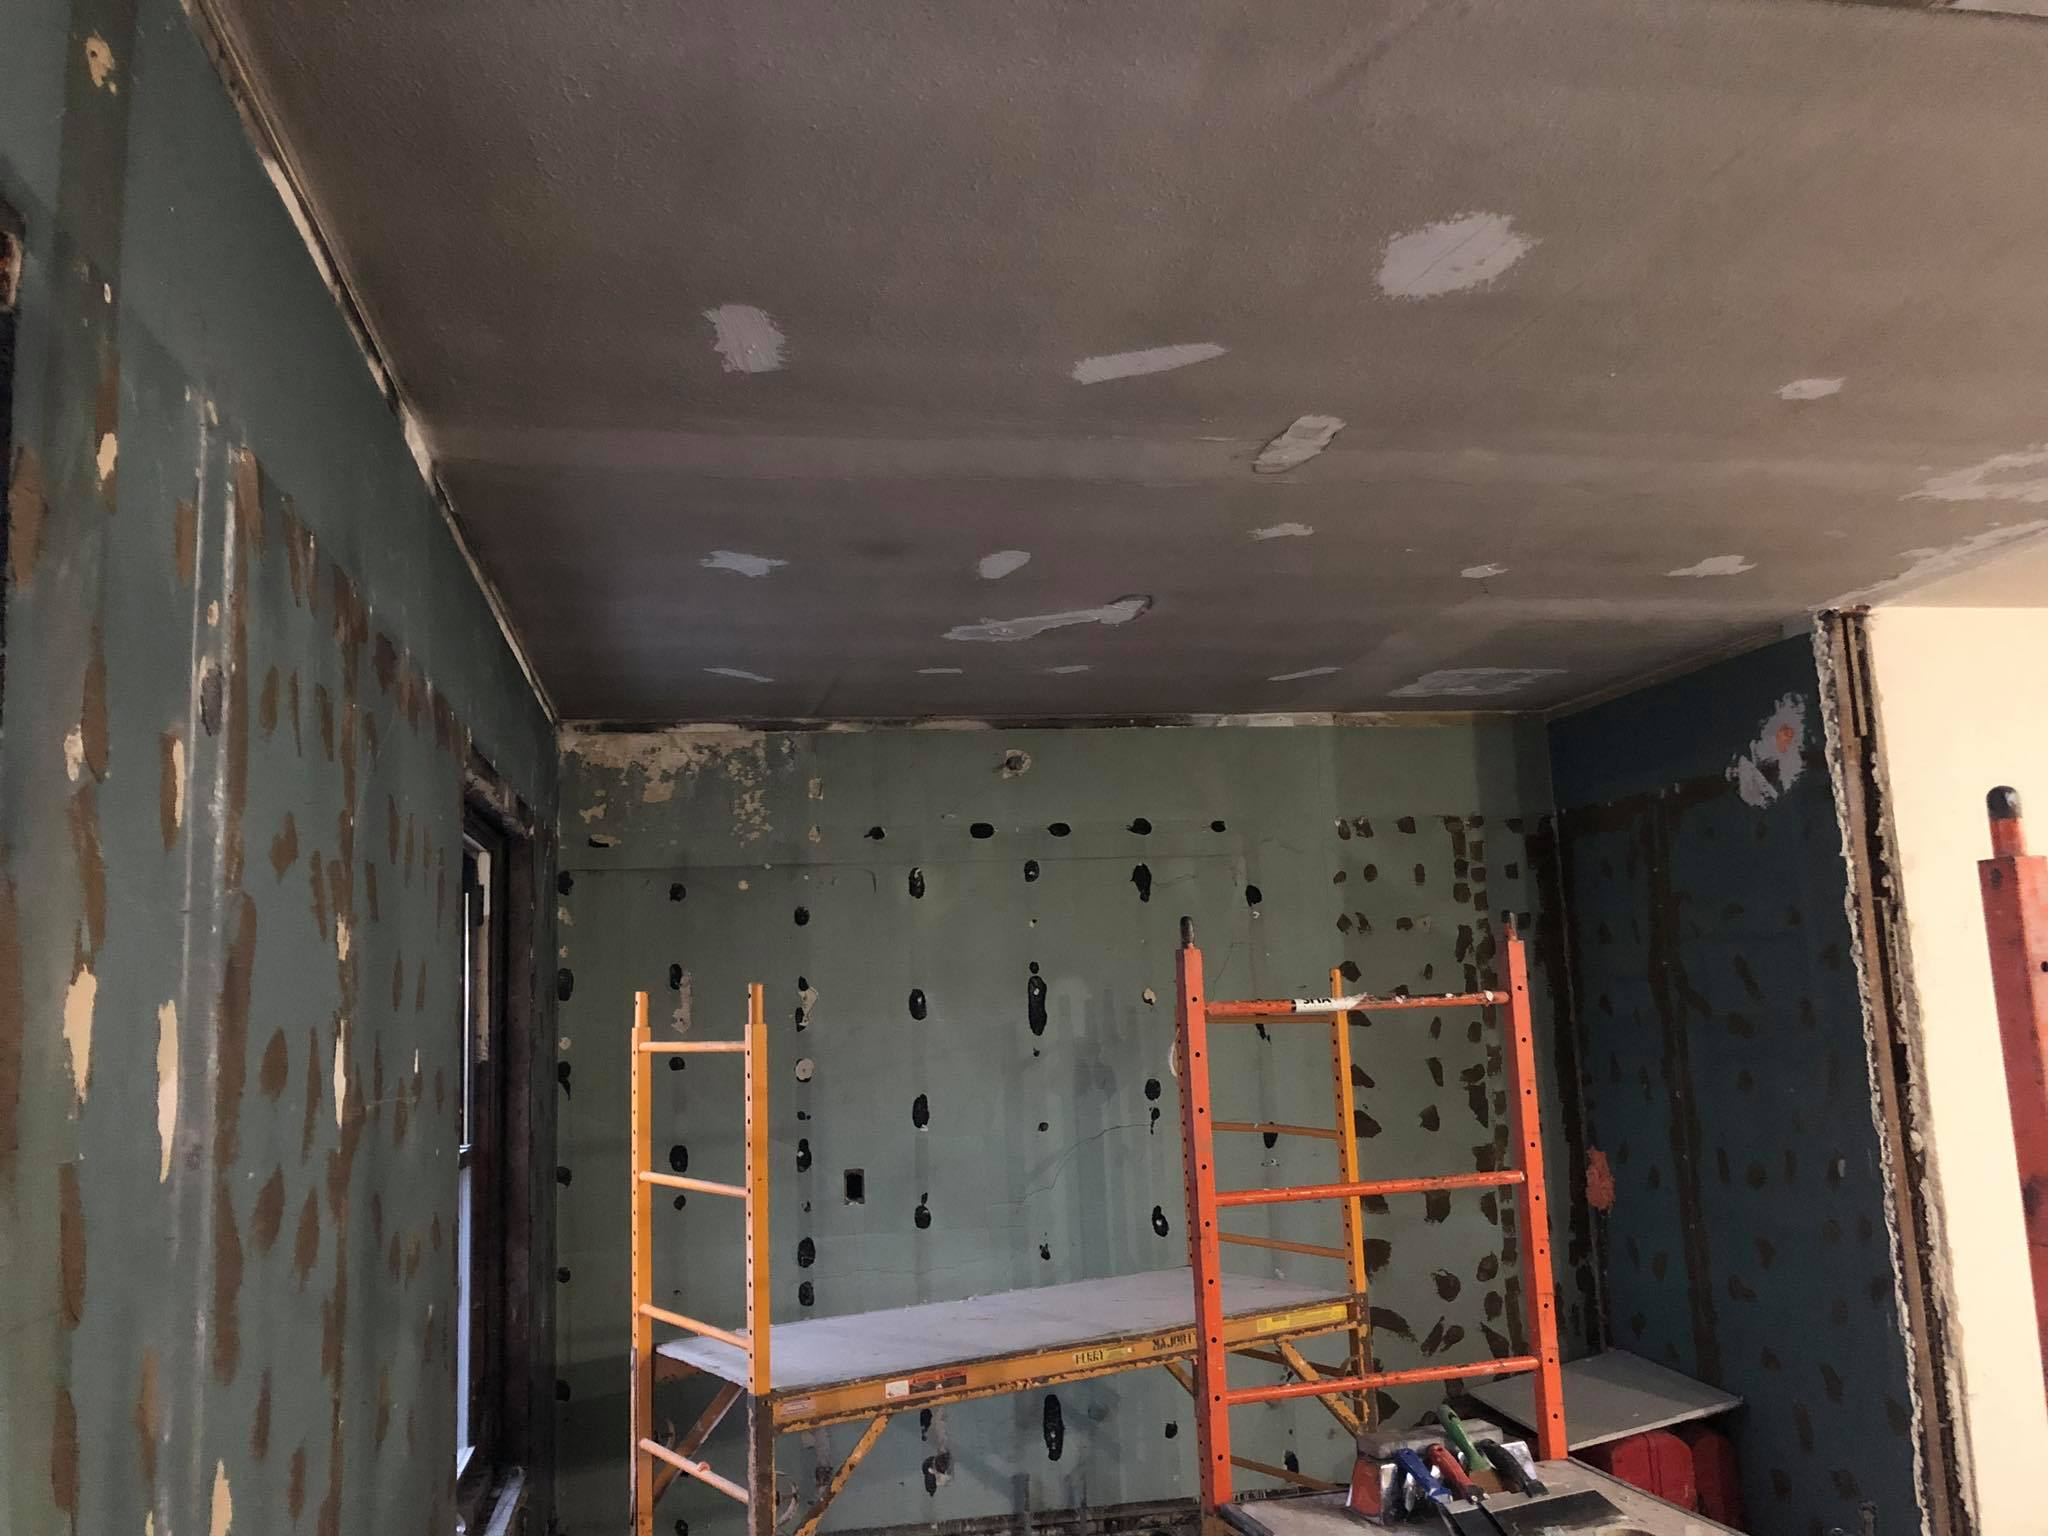 Re-plastering and installation of new ductwork for central heating and air conditioning is already underway!